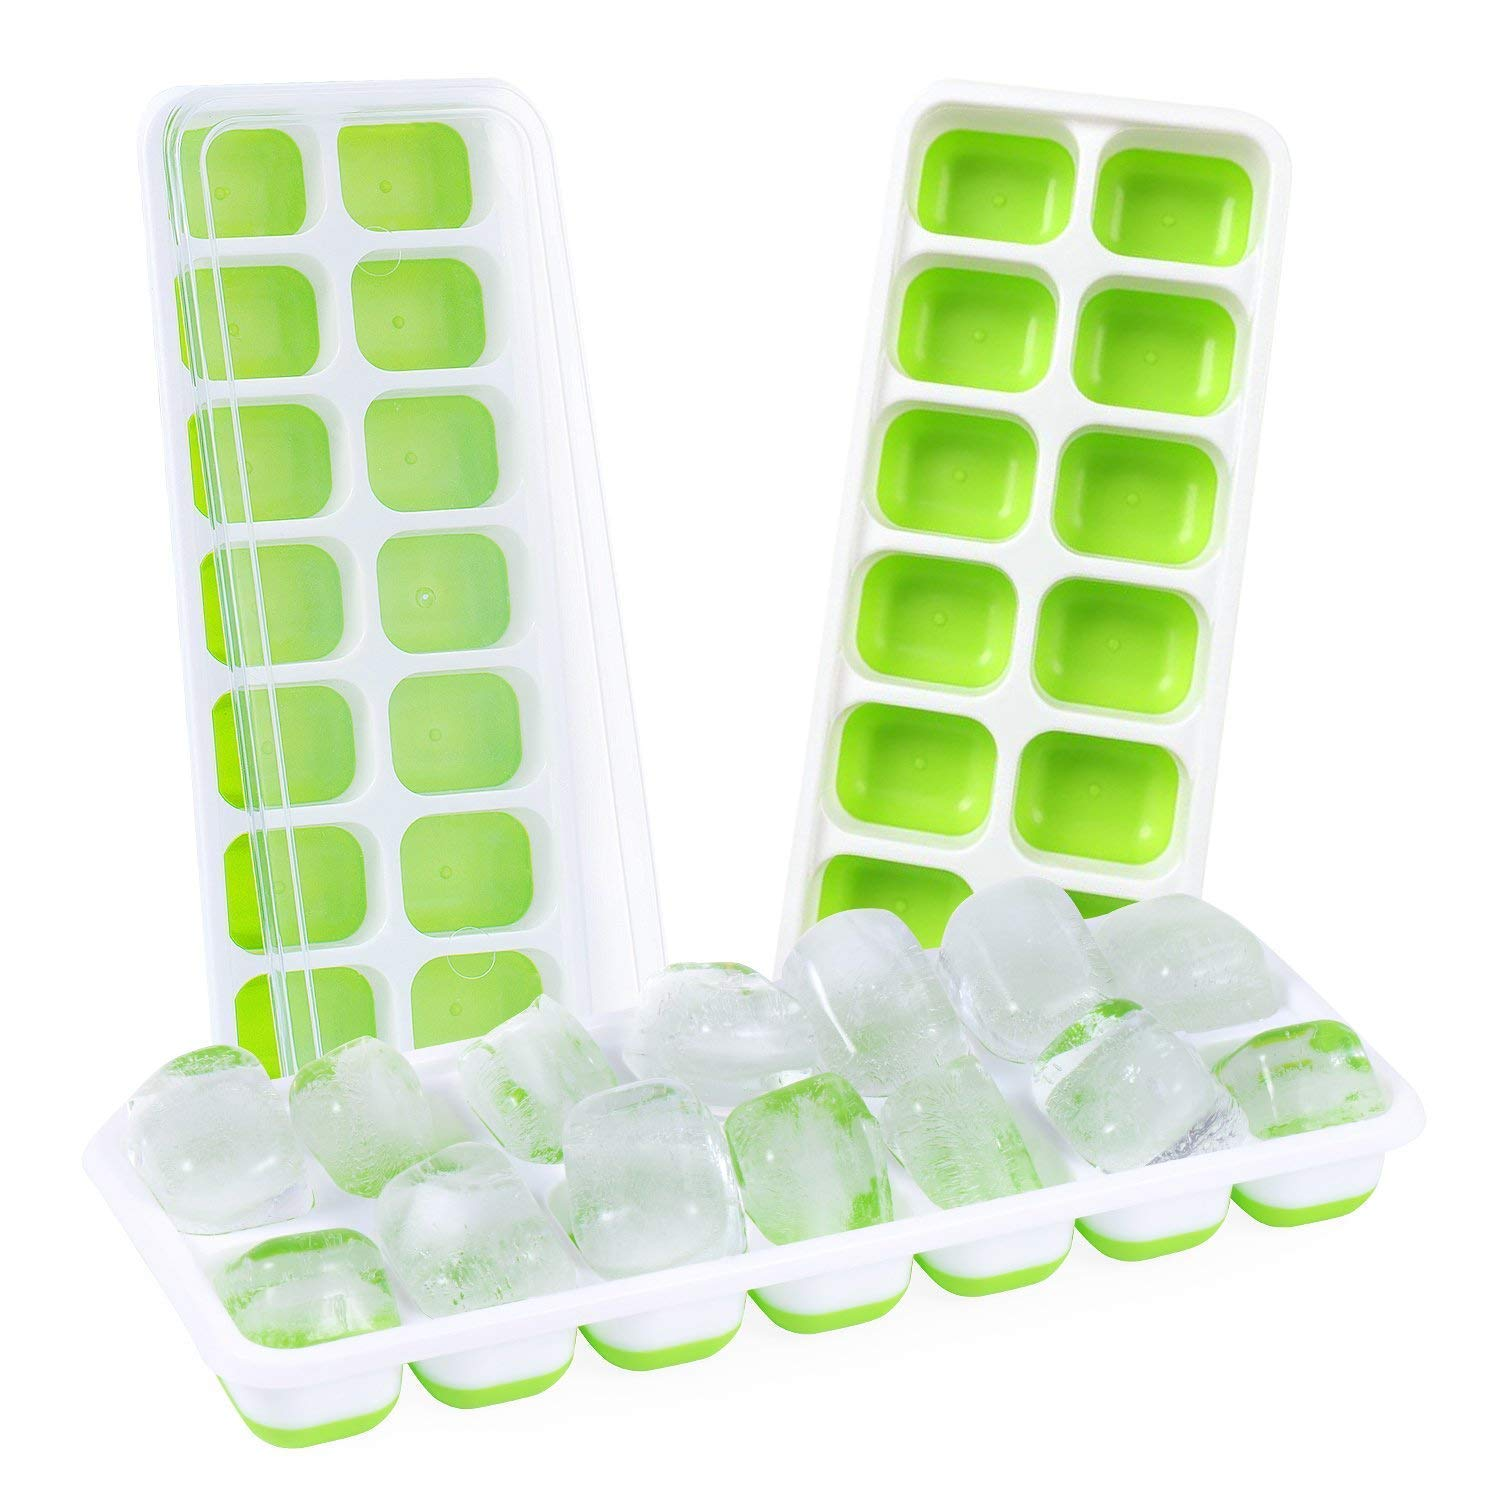 Ice Cube Trays 3 Pack, Easy Release Silicone and Flexible 14 Shaped Cubes with Spill-Resistant Removable Lid, Flexible Rubber Ice Molds for Whisky, Cocktail, Bourbon, LFGB Certified and BPA